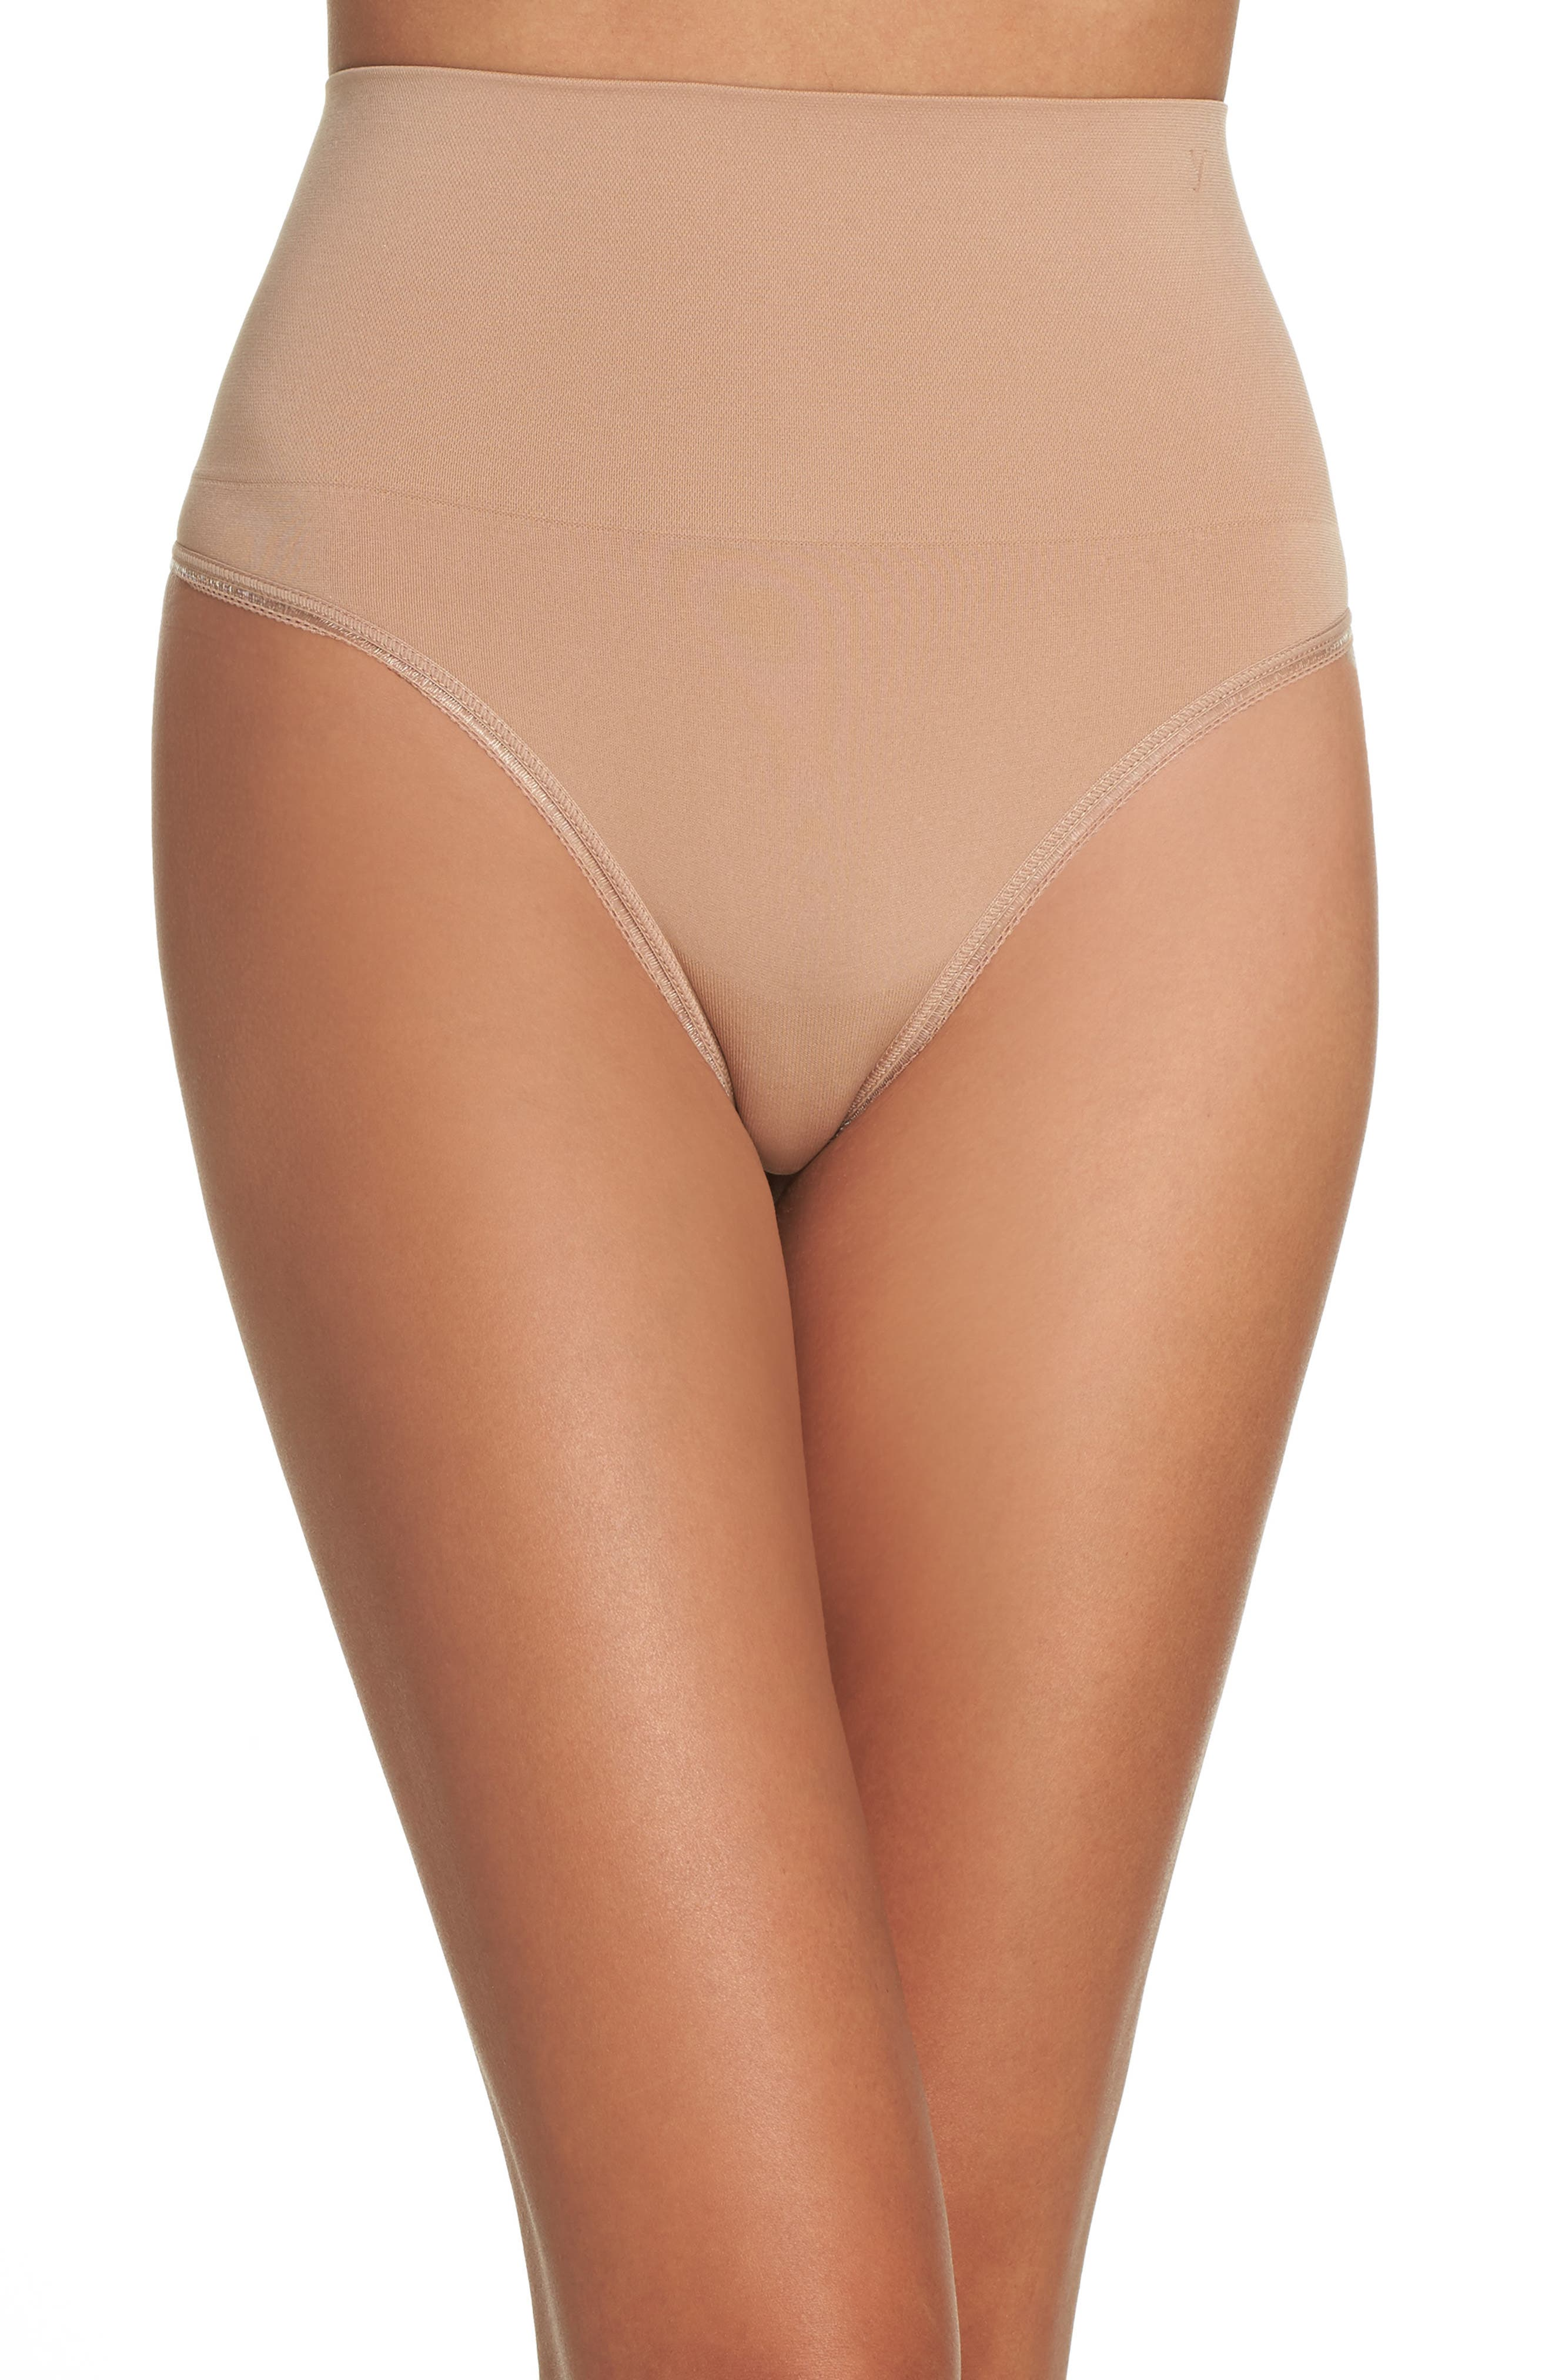 Ultralight Seamless Shaping Thong,                             Main thumbnail 1, color,                             Almond